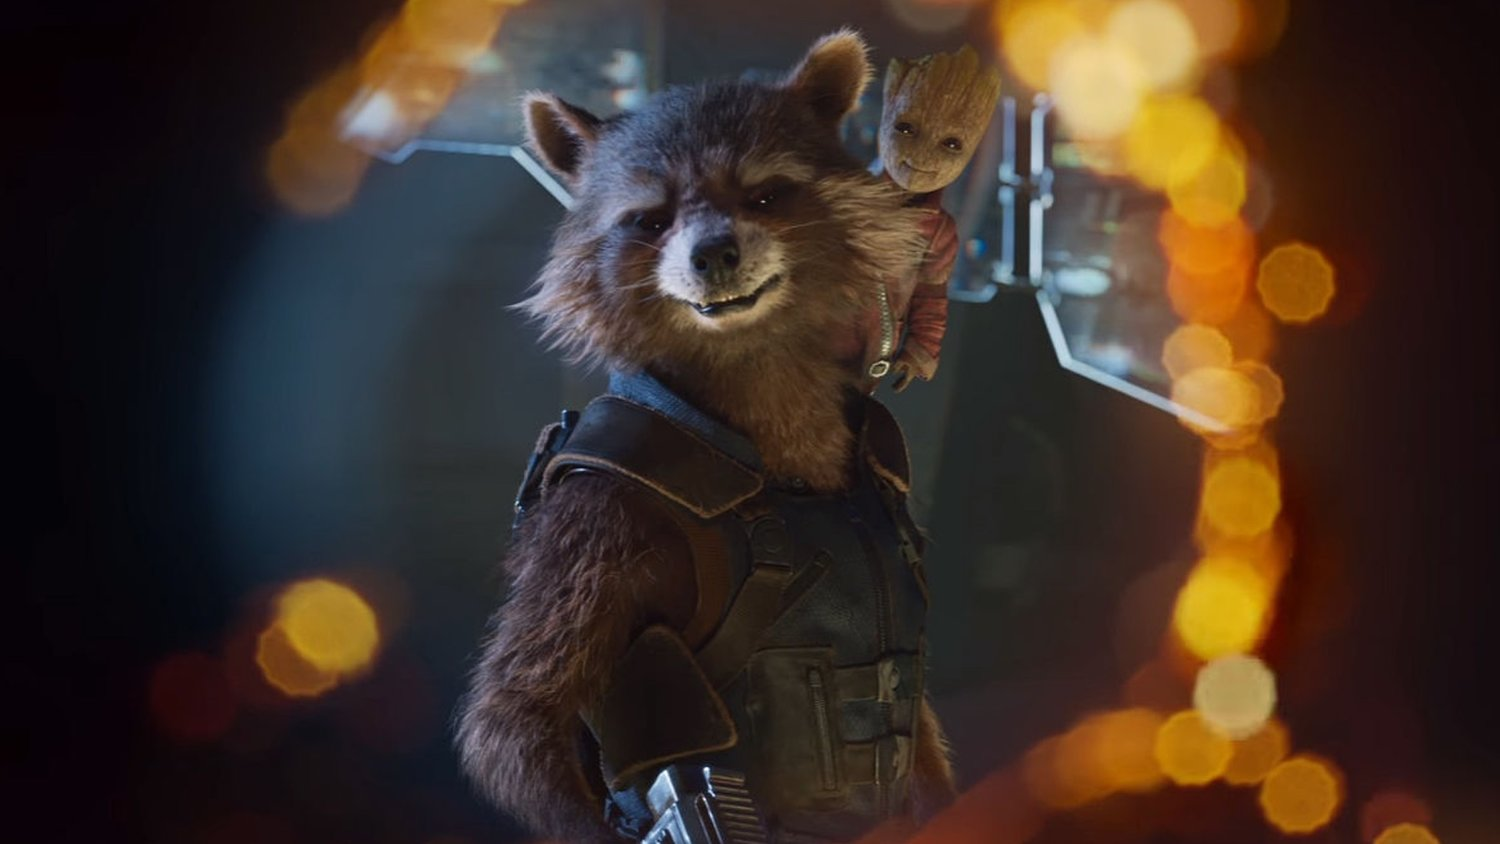 Looks Like a New Marvel Superhero Will Be Introduced in GUARDIANS OF THE GALAXY VOL. 2